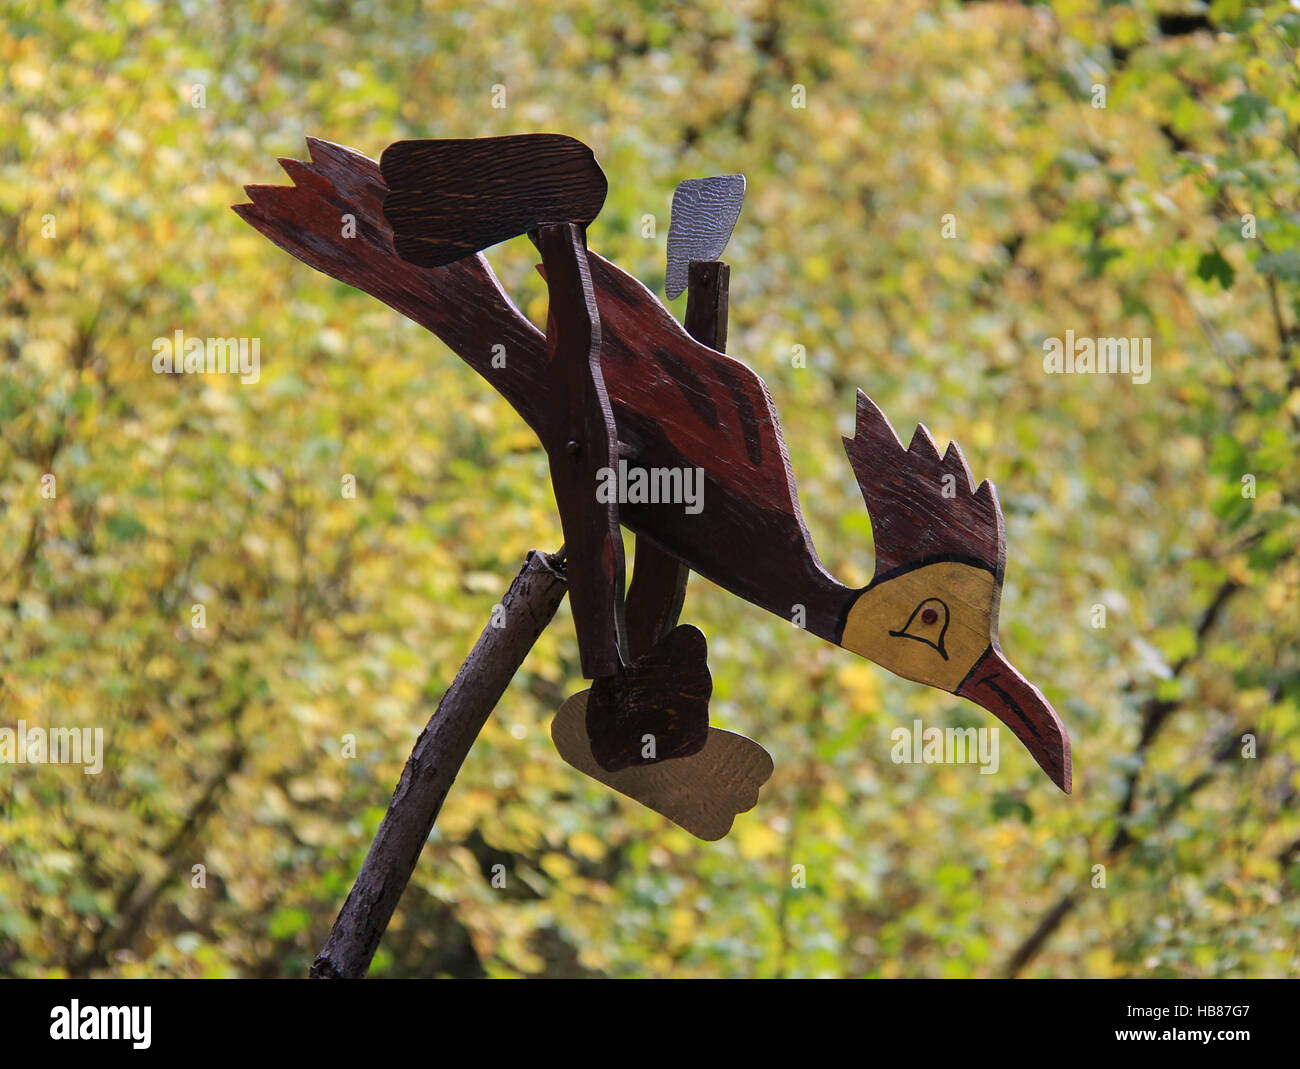 Wooden roadrunner whirligig with autumn trees in background - Stock Image